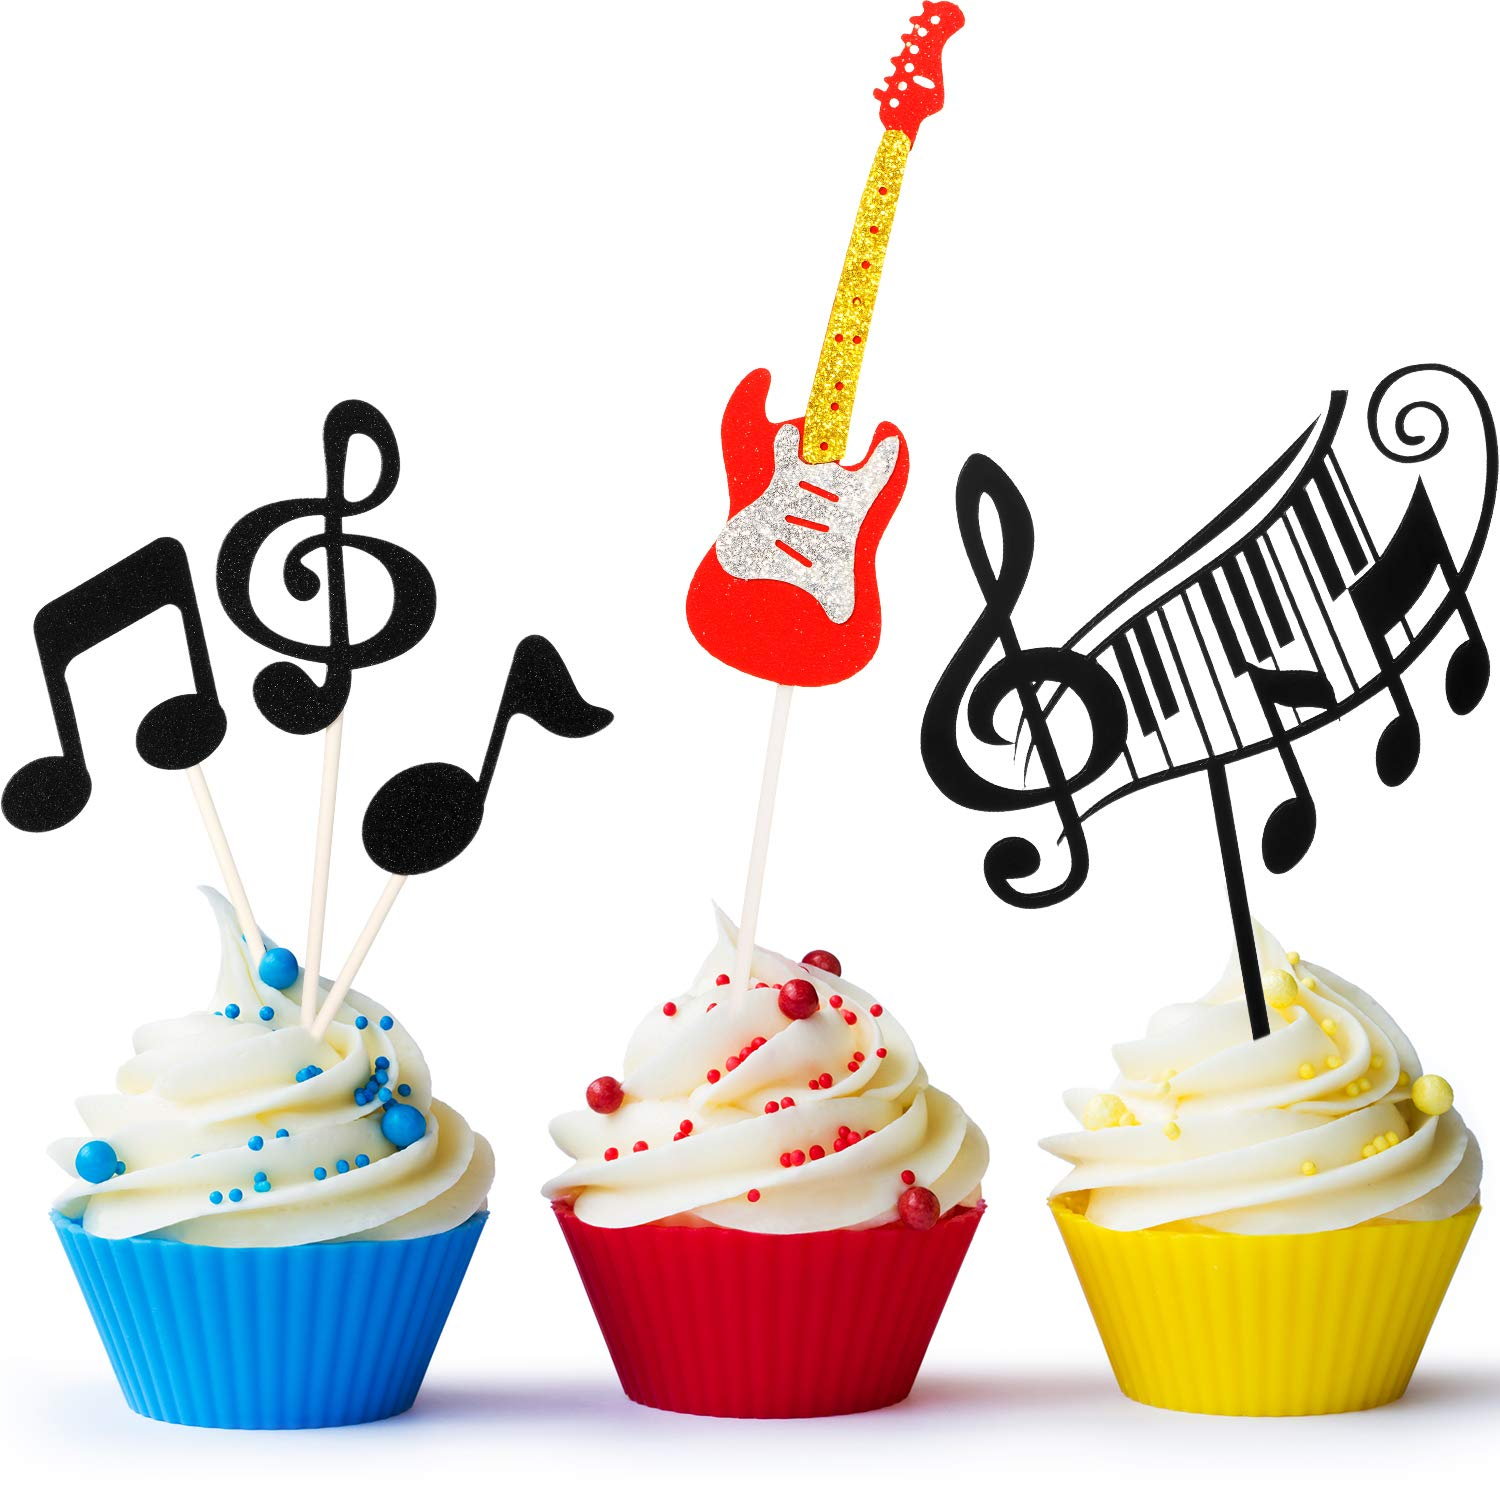 Swell 8 Pieces Music Notes Cupcake Toppers Guitar Cake Toppers Musical Personalised Birthday Cards Akebfashionlily Jamesorg